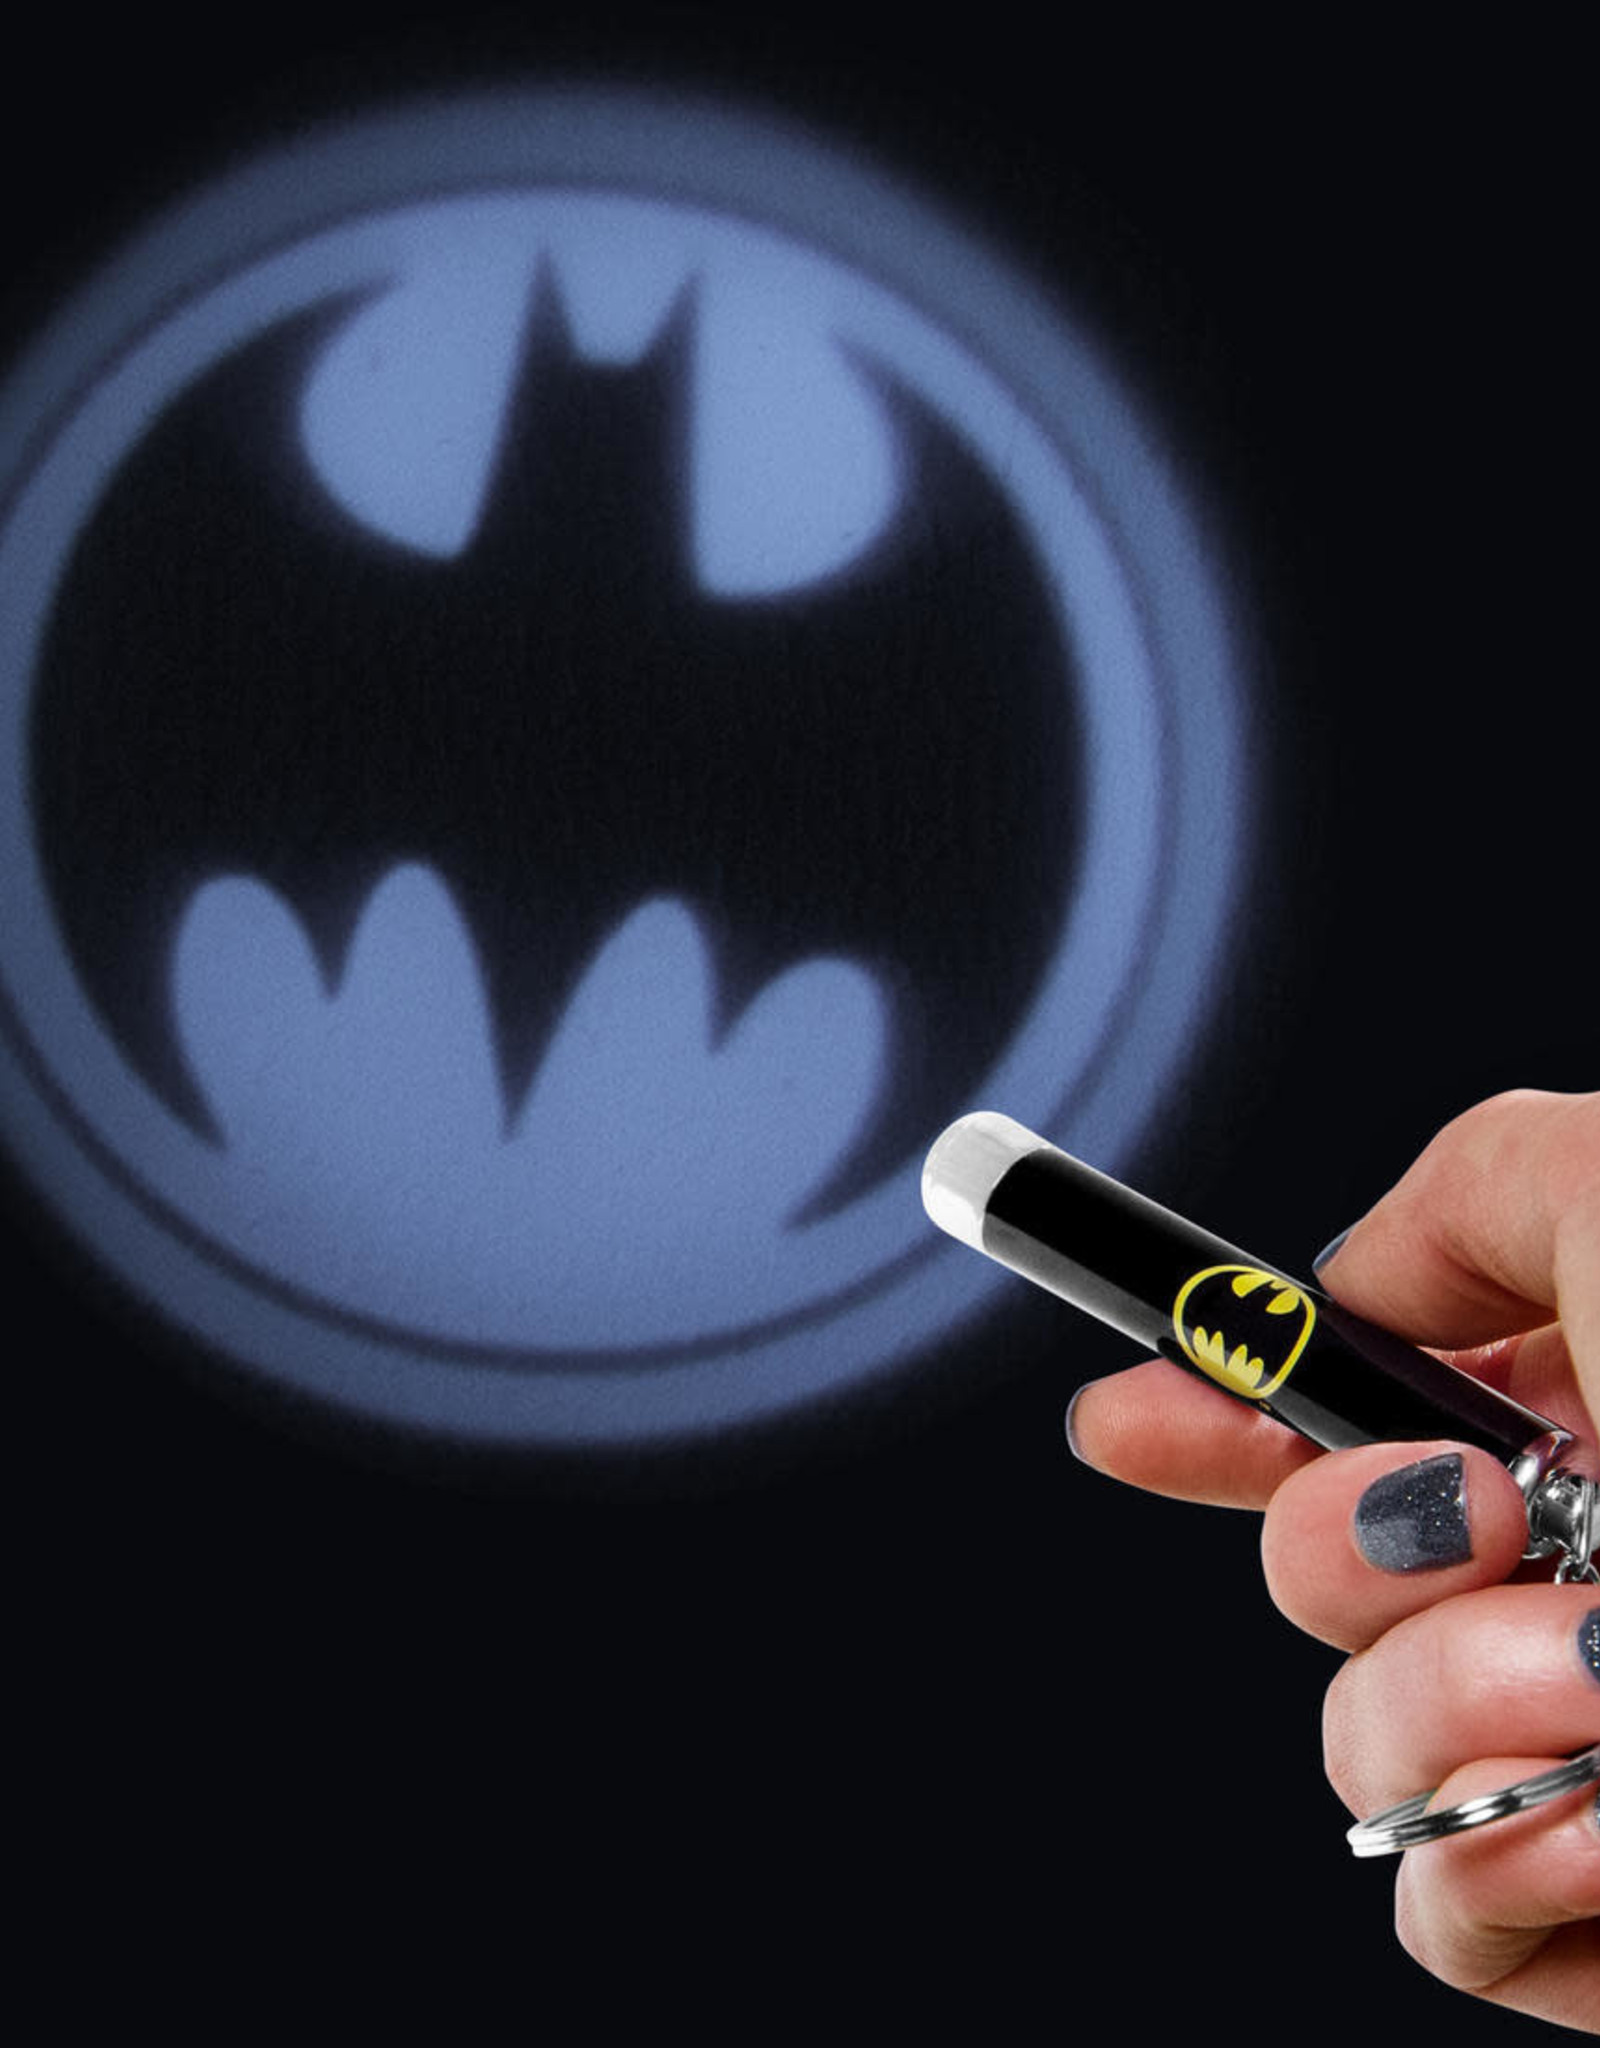 Paladone Batman Flashlight